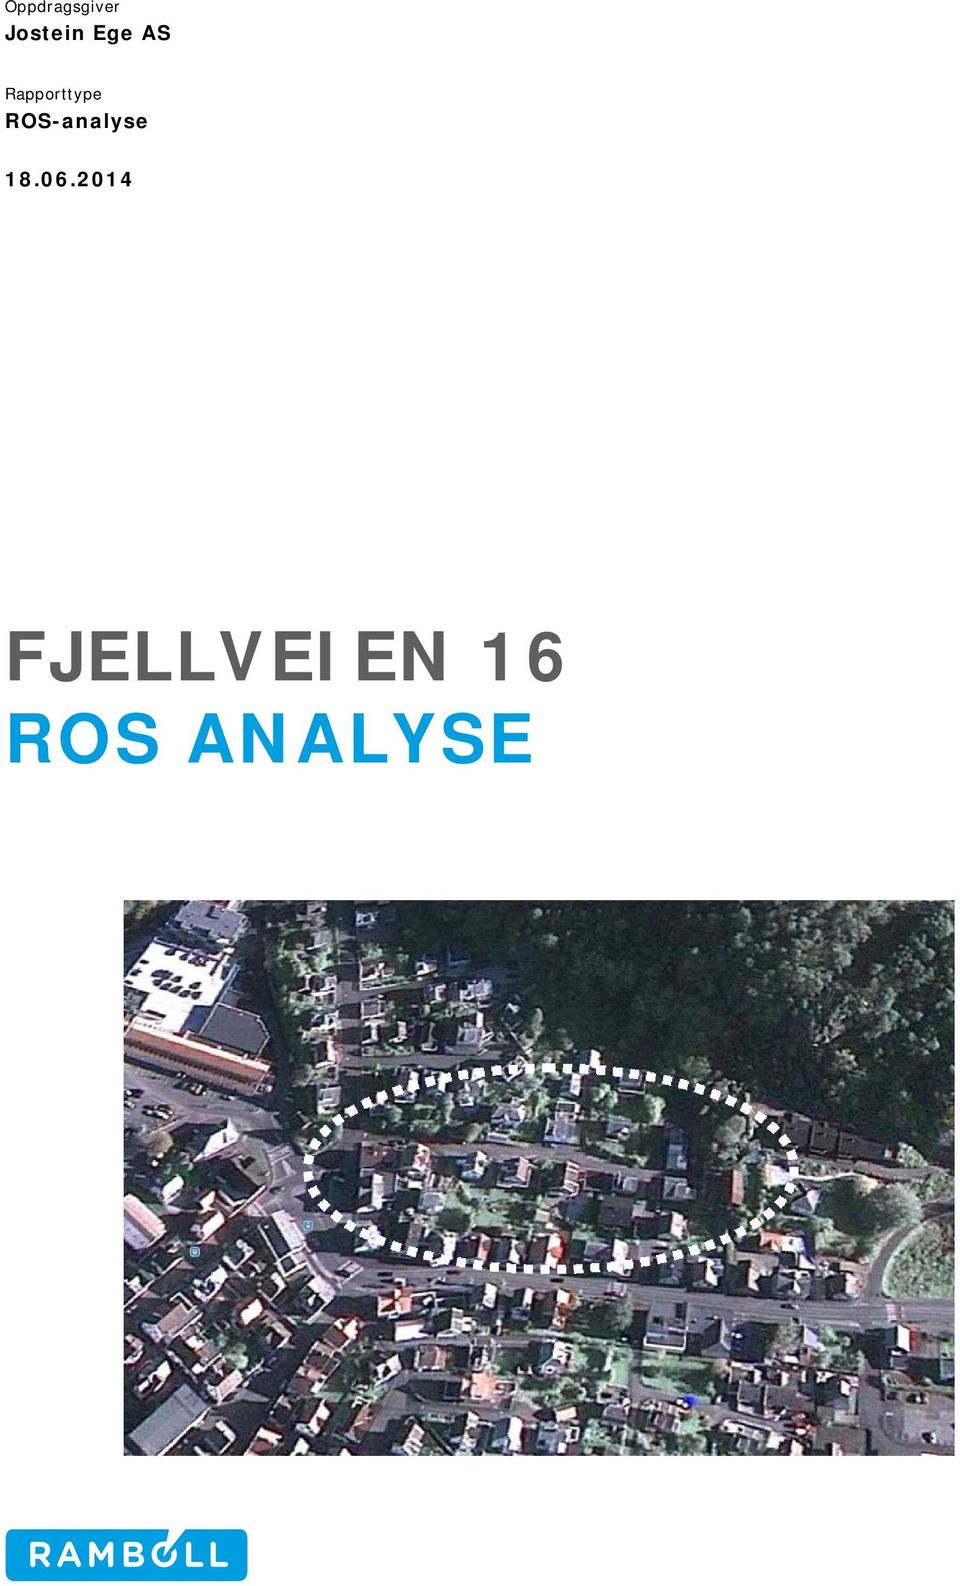 ROS-analyse 18.06.